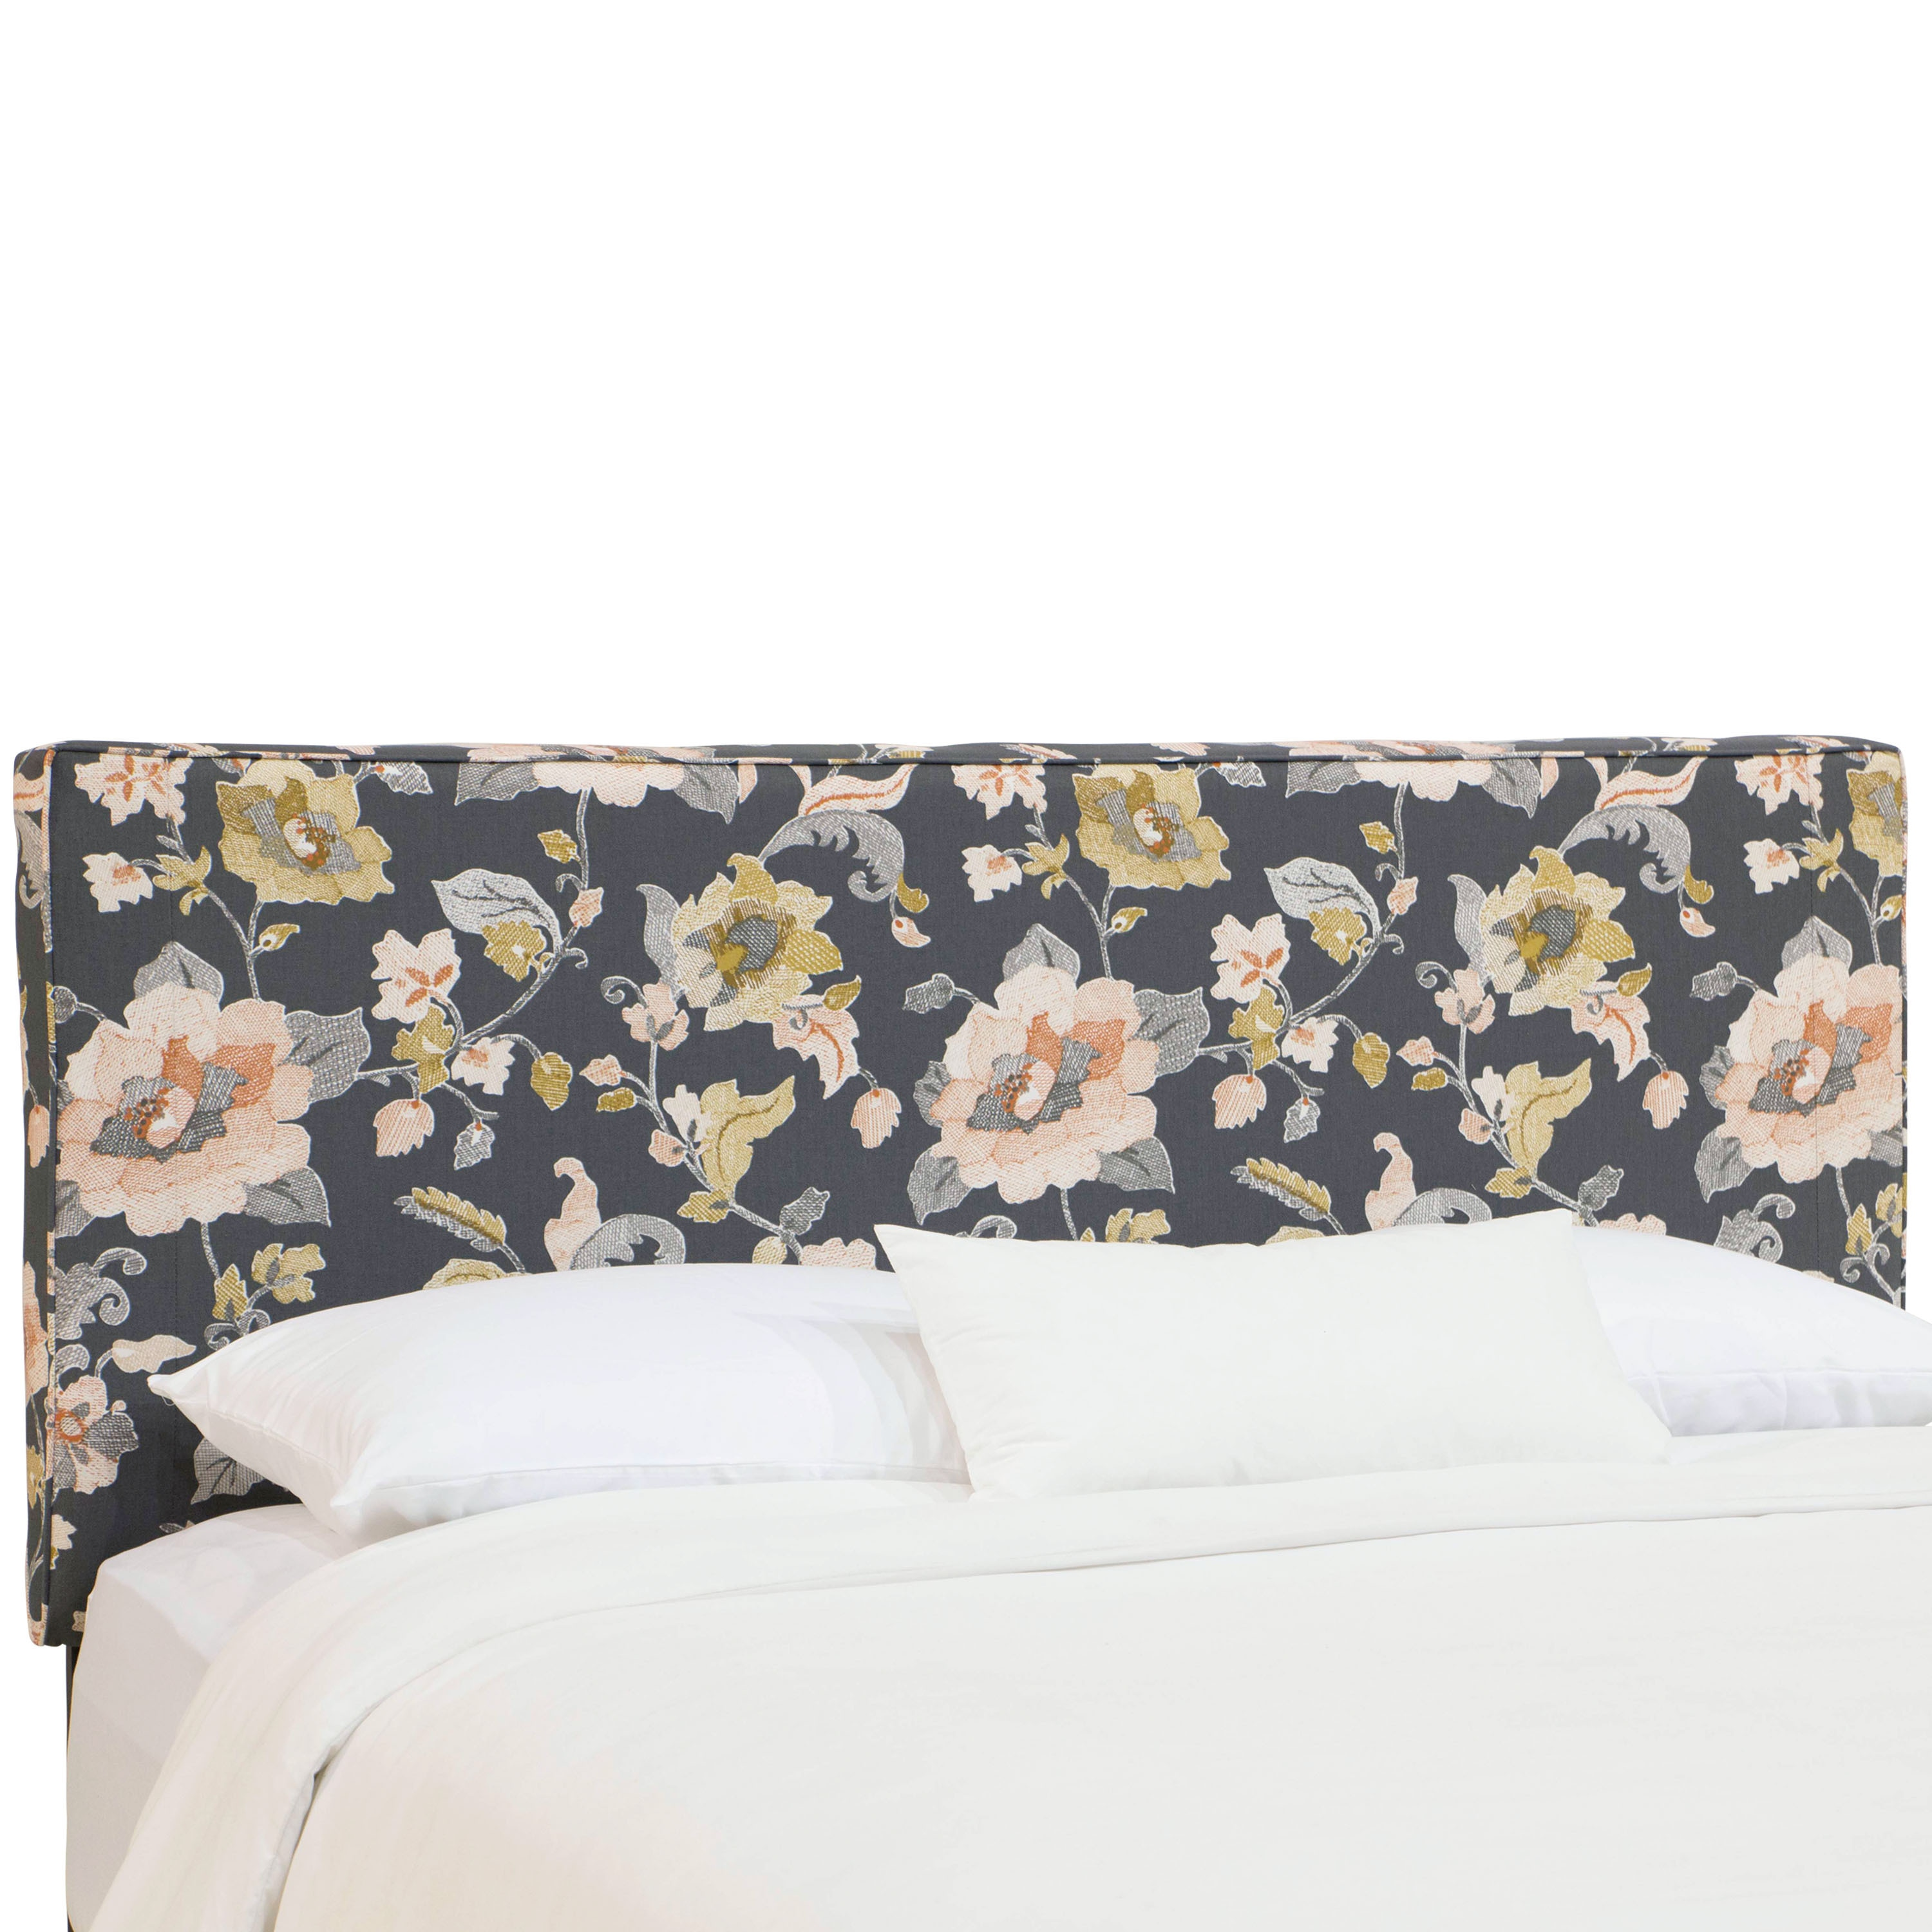 nail product cfm skyline nailbuttonwingbackupholsteredlowprofilebed linen button options headboard furniture linentalc upholstered hayneedle bed wingback